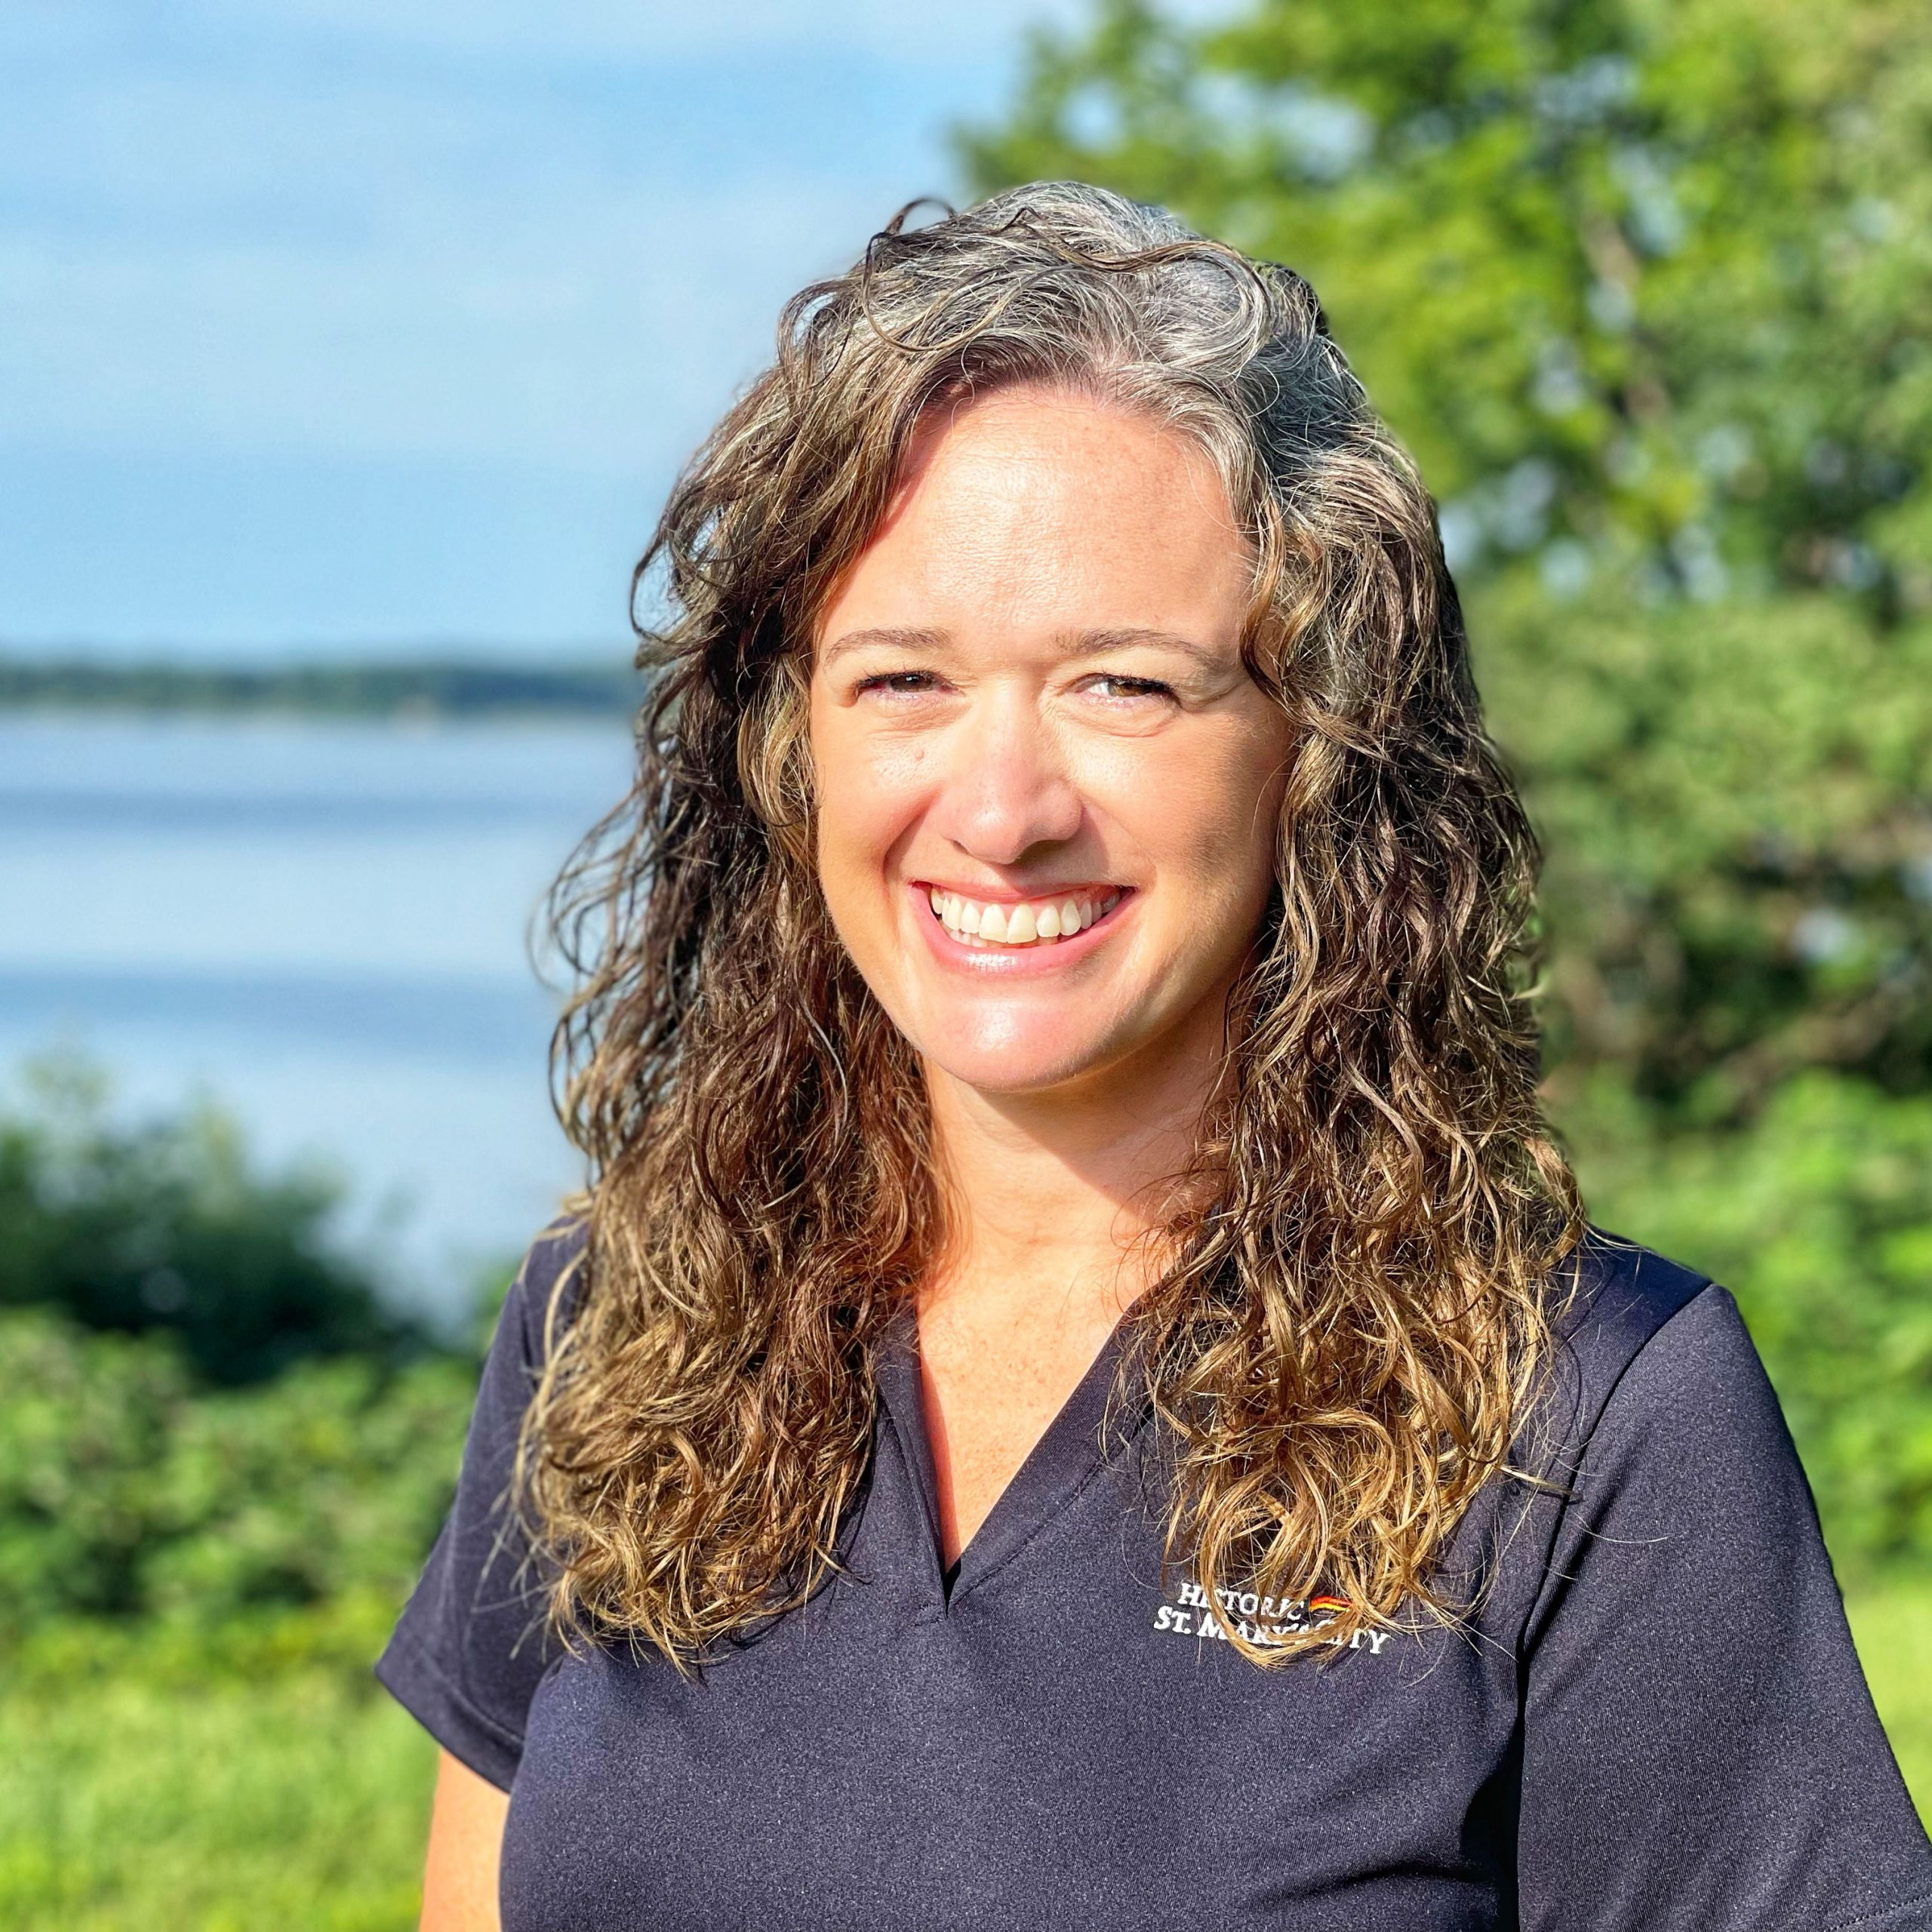 Volunteer Coordinator Ellen Fitzgerald stands, smiling, with the St. Mary's River behind her.